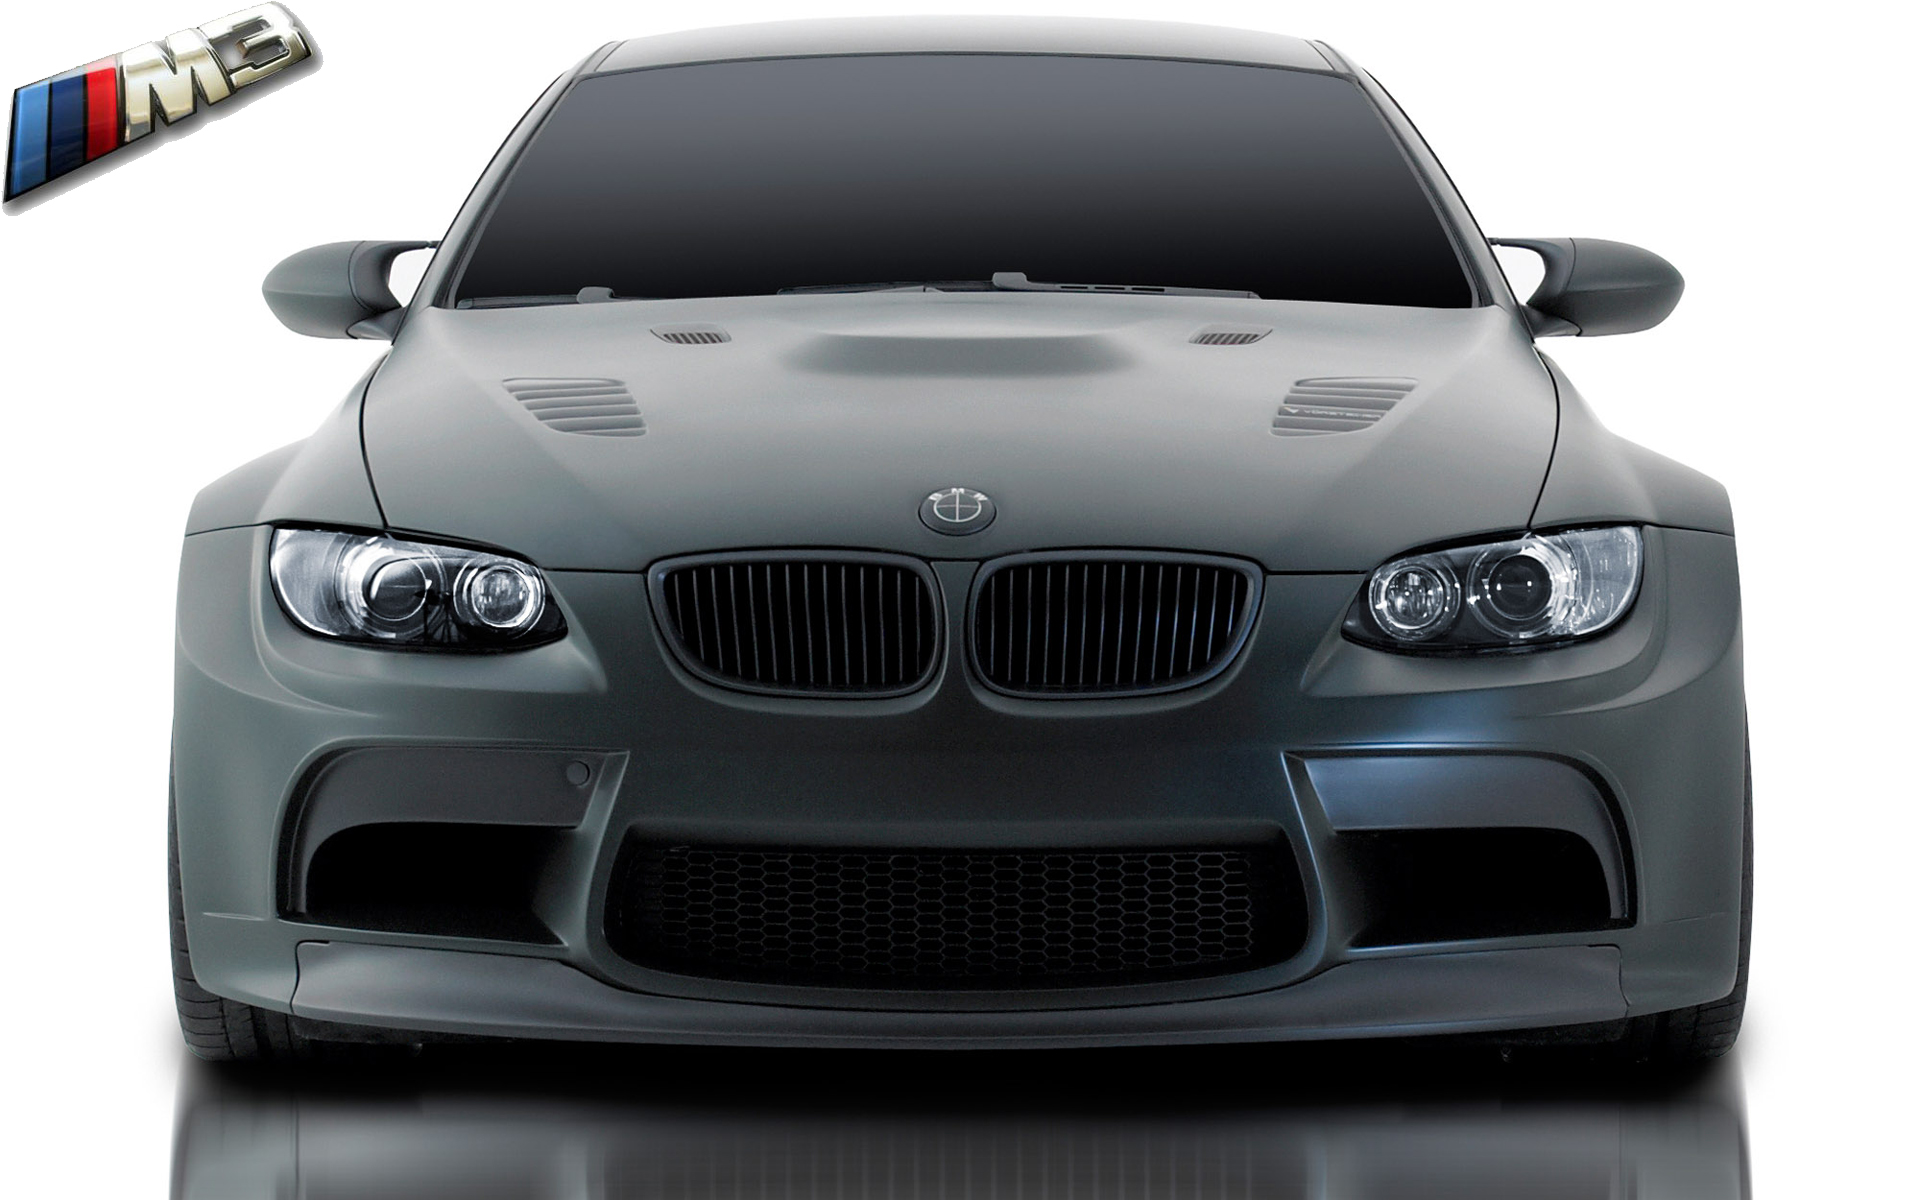 bmw m3 gtrs3 wallpapers - photo #20